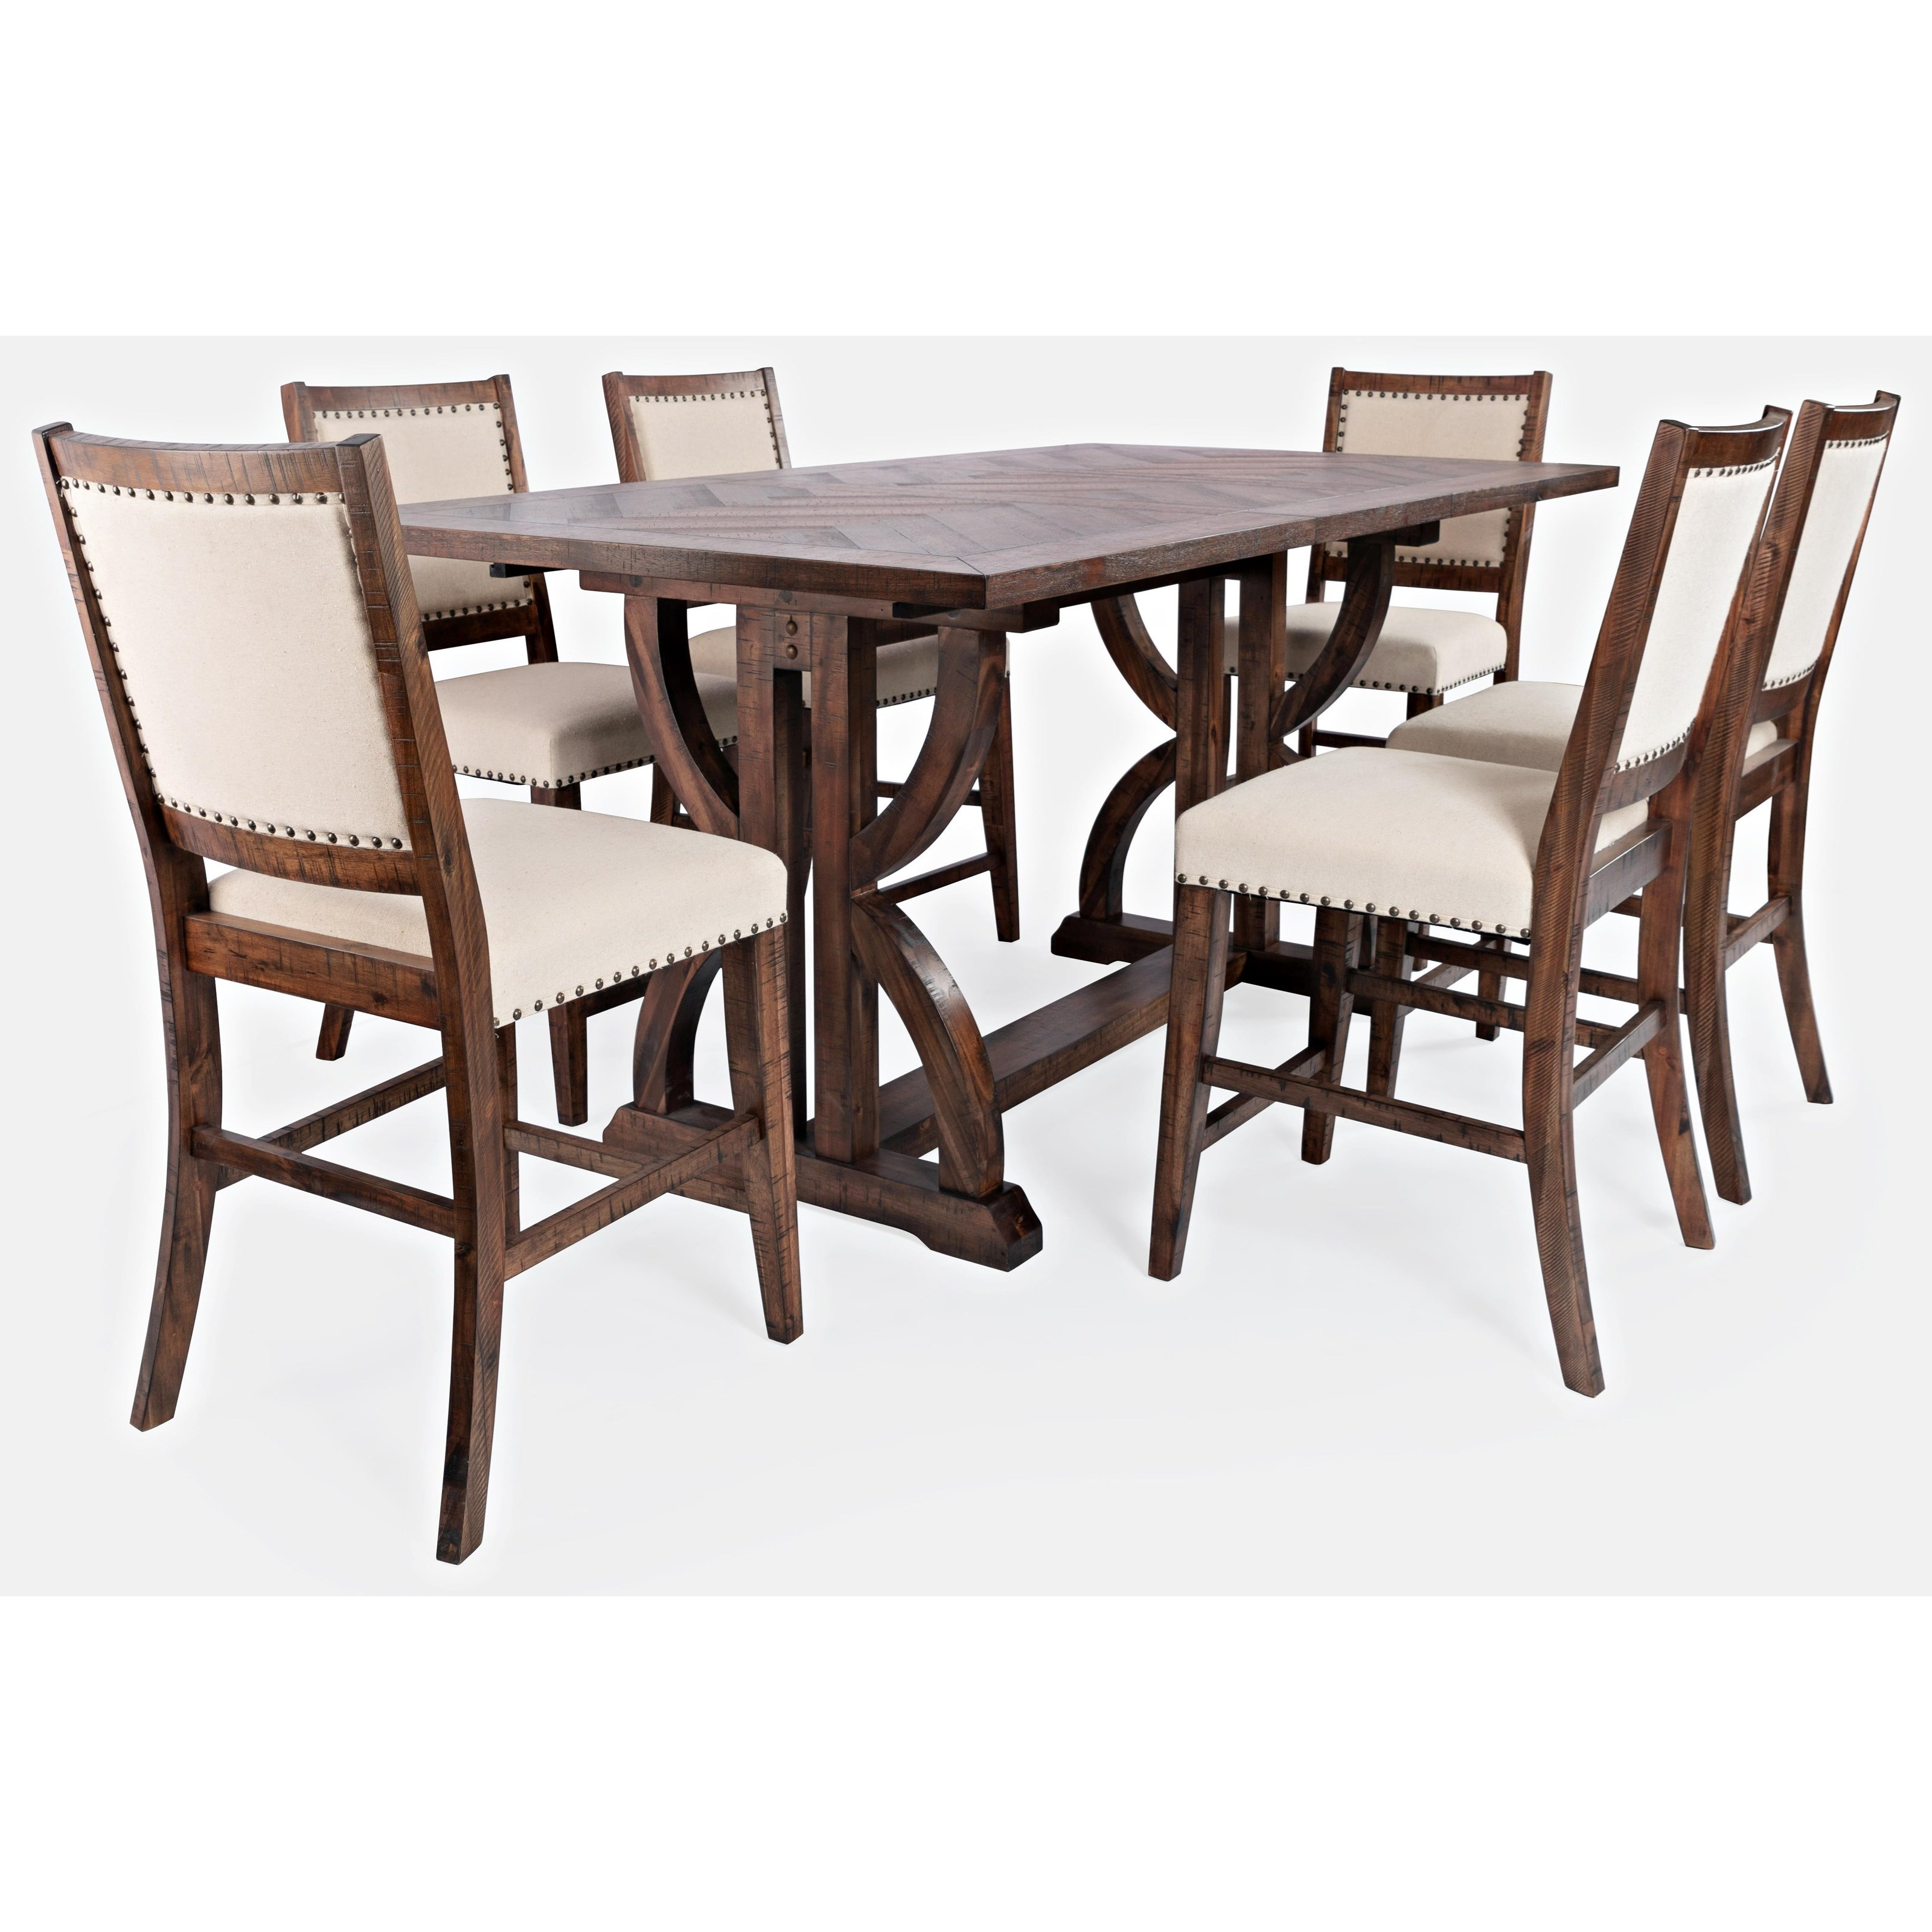 Fairview 7-Piece Counter Table and Chair Set by Jofran at Jofran